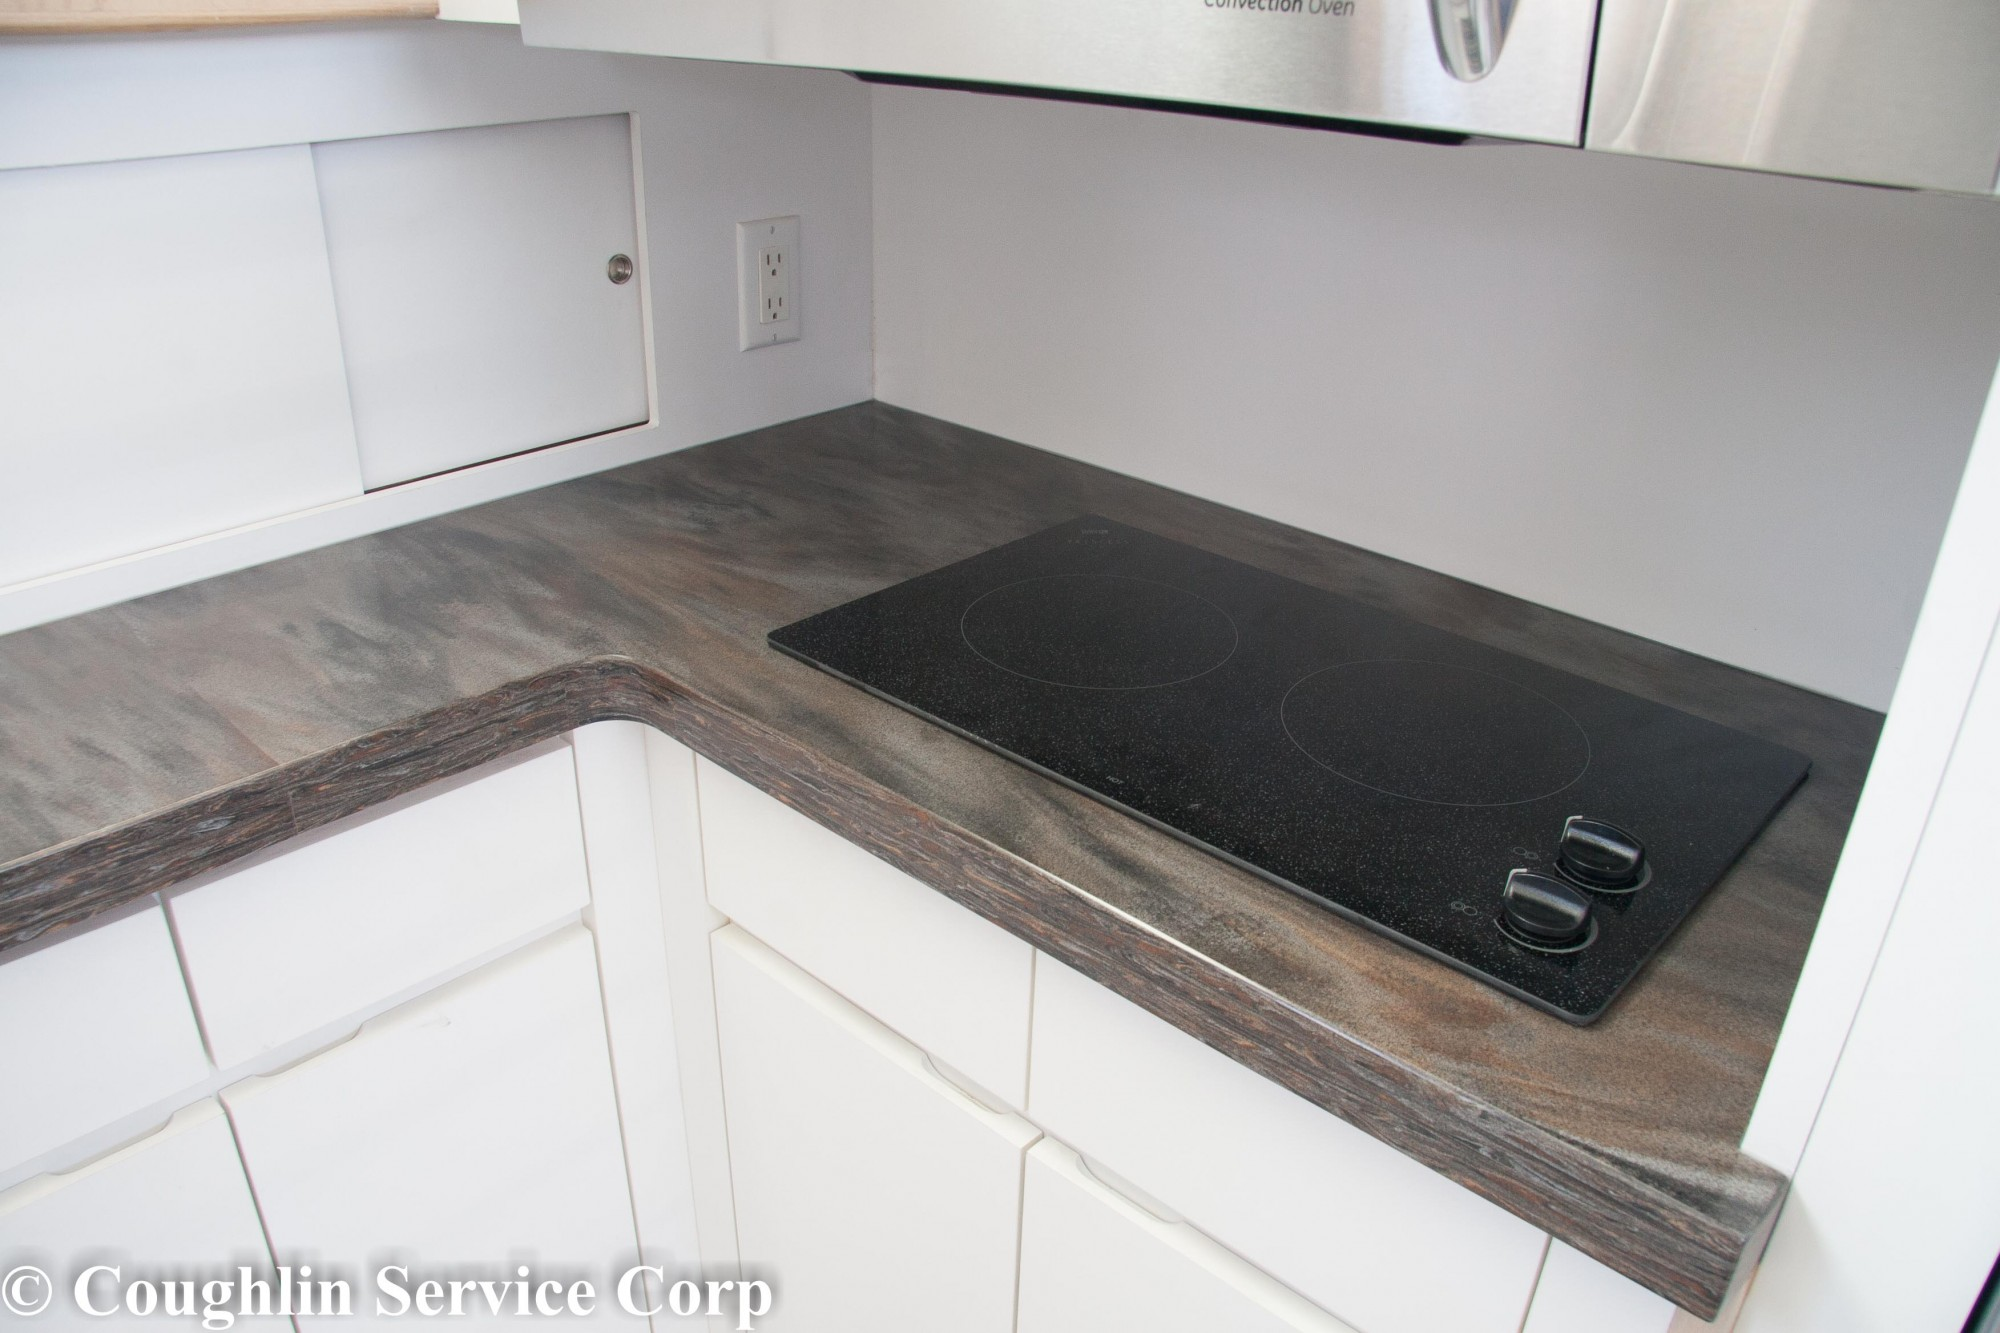 Carpentry pictures posters news and videos on your for Countertop cost per linear foot